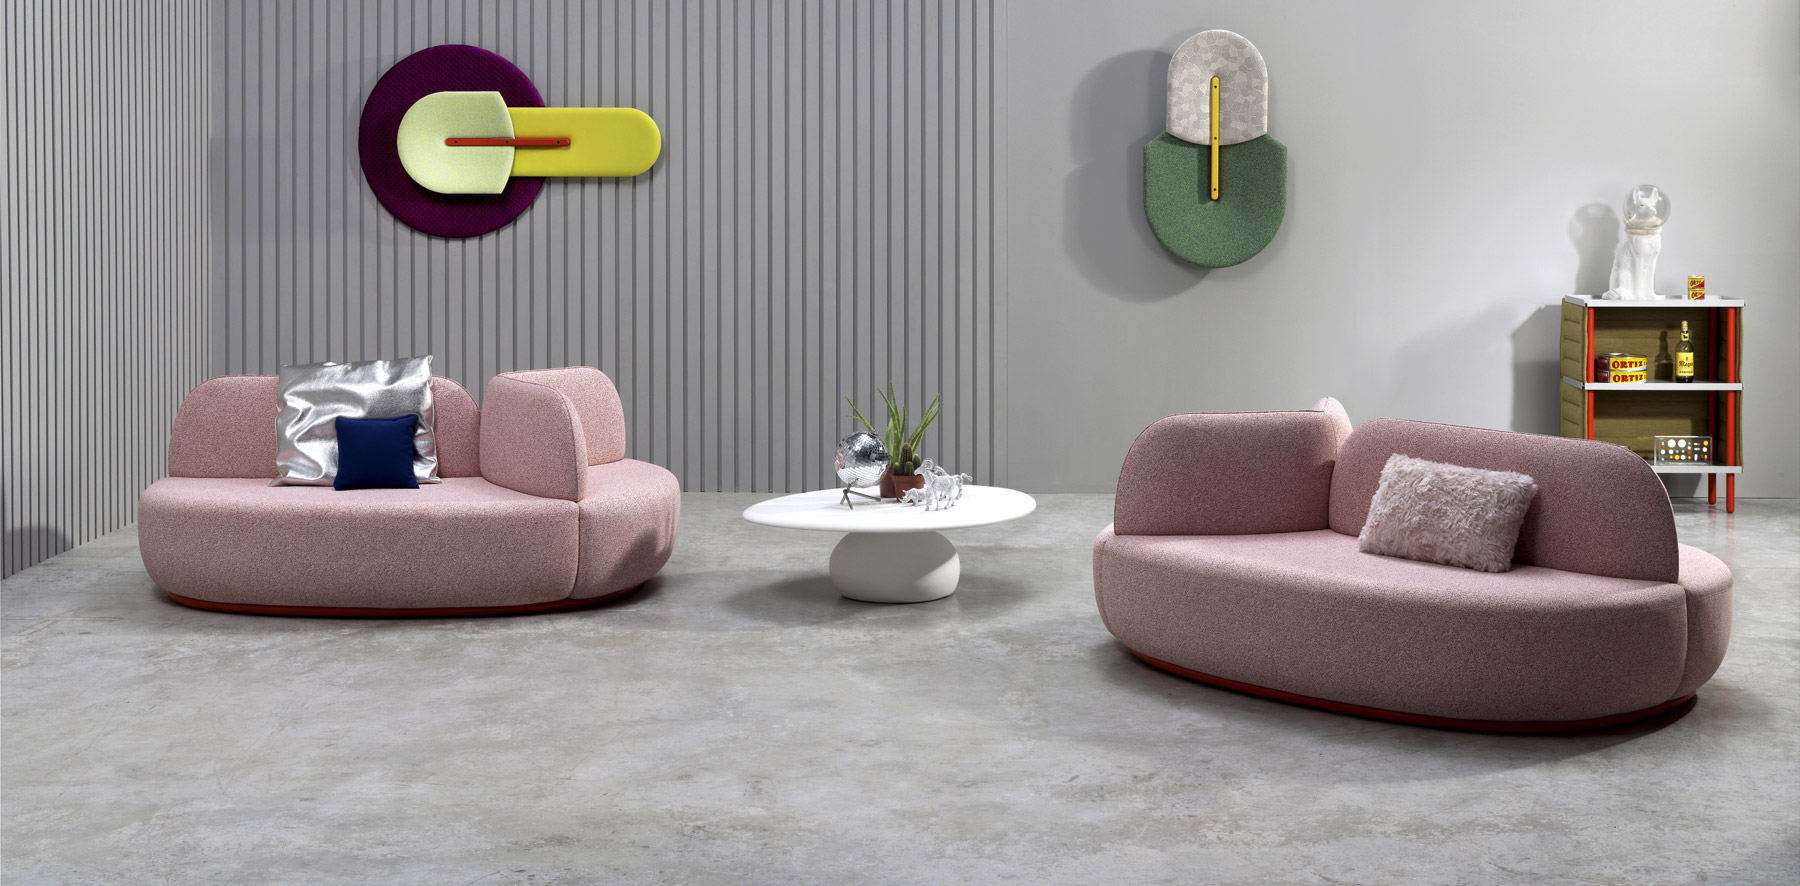 Couch Designs Note Designs Sancal La Isla Sofa As Sanctuary Of Character And Comfort